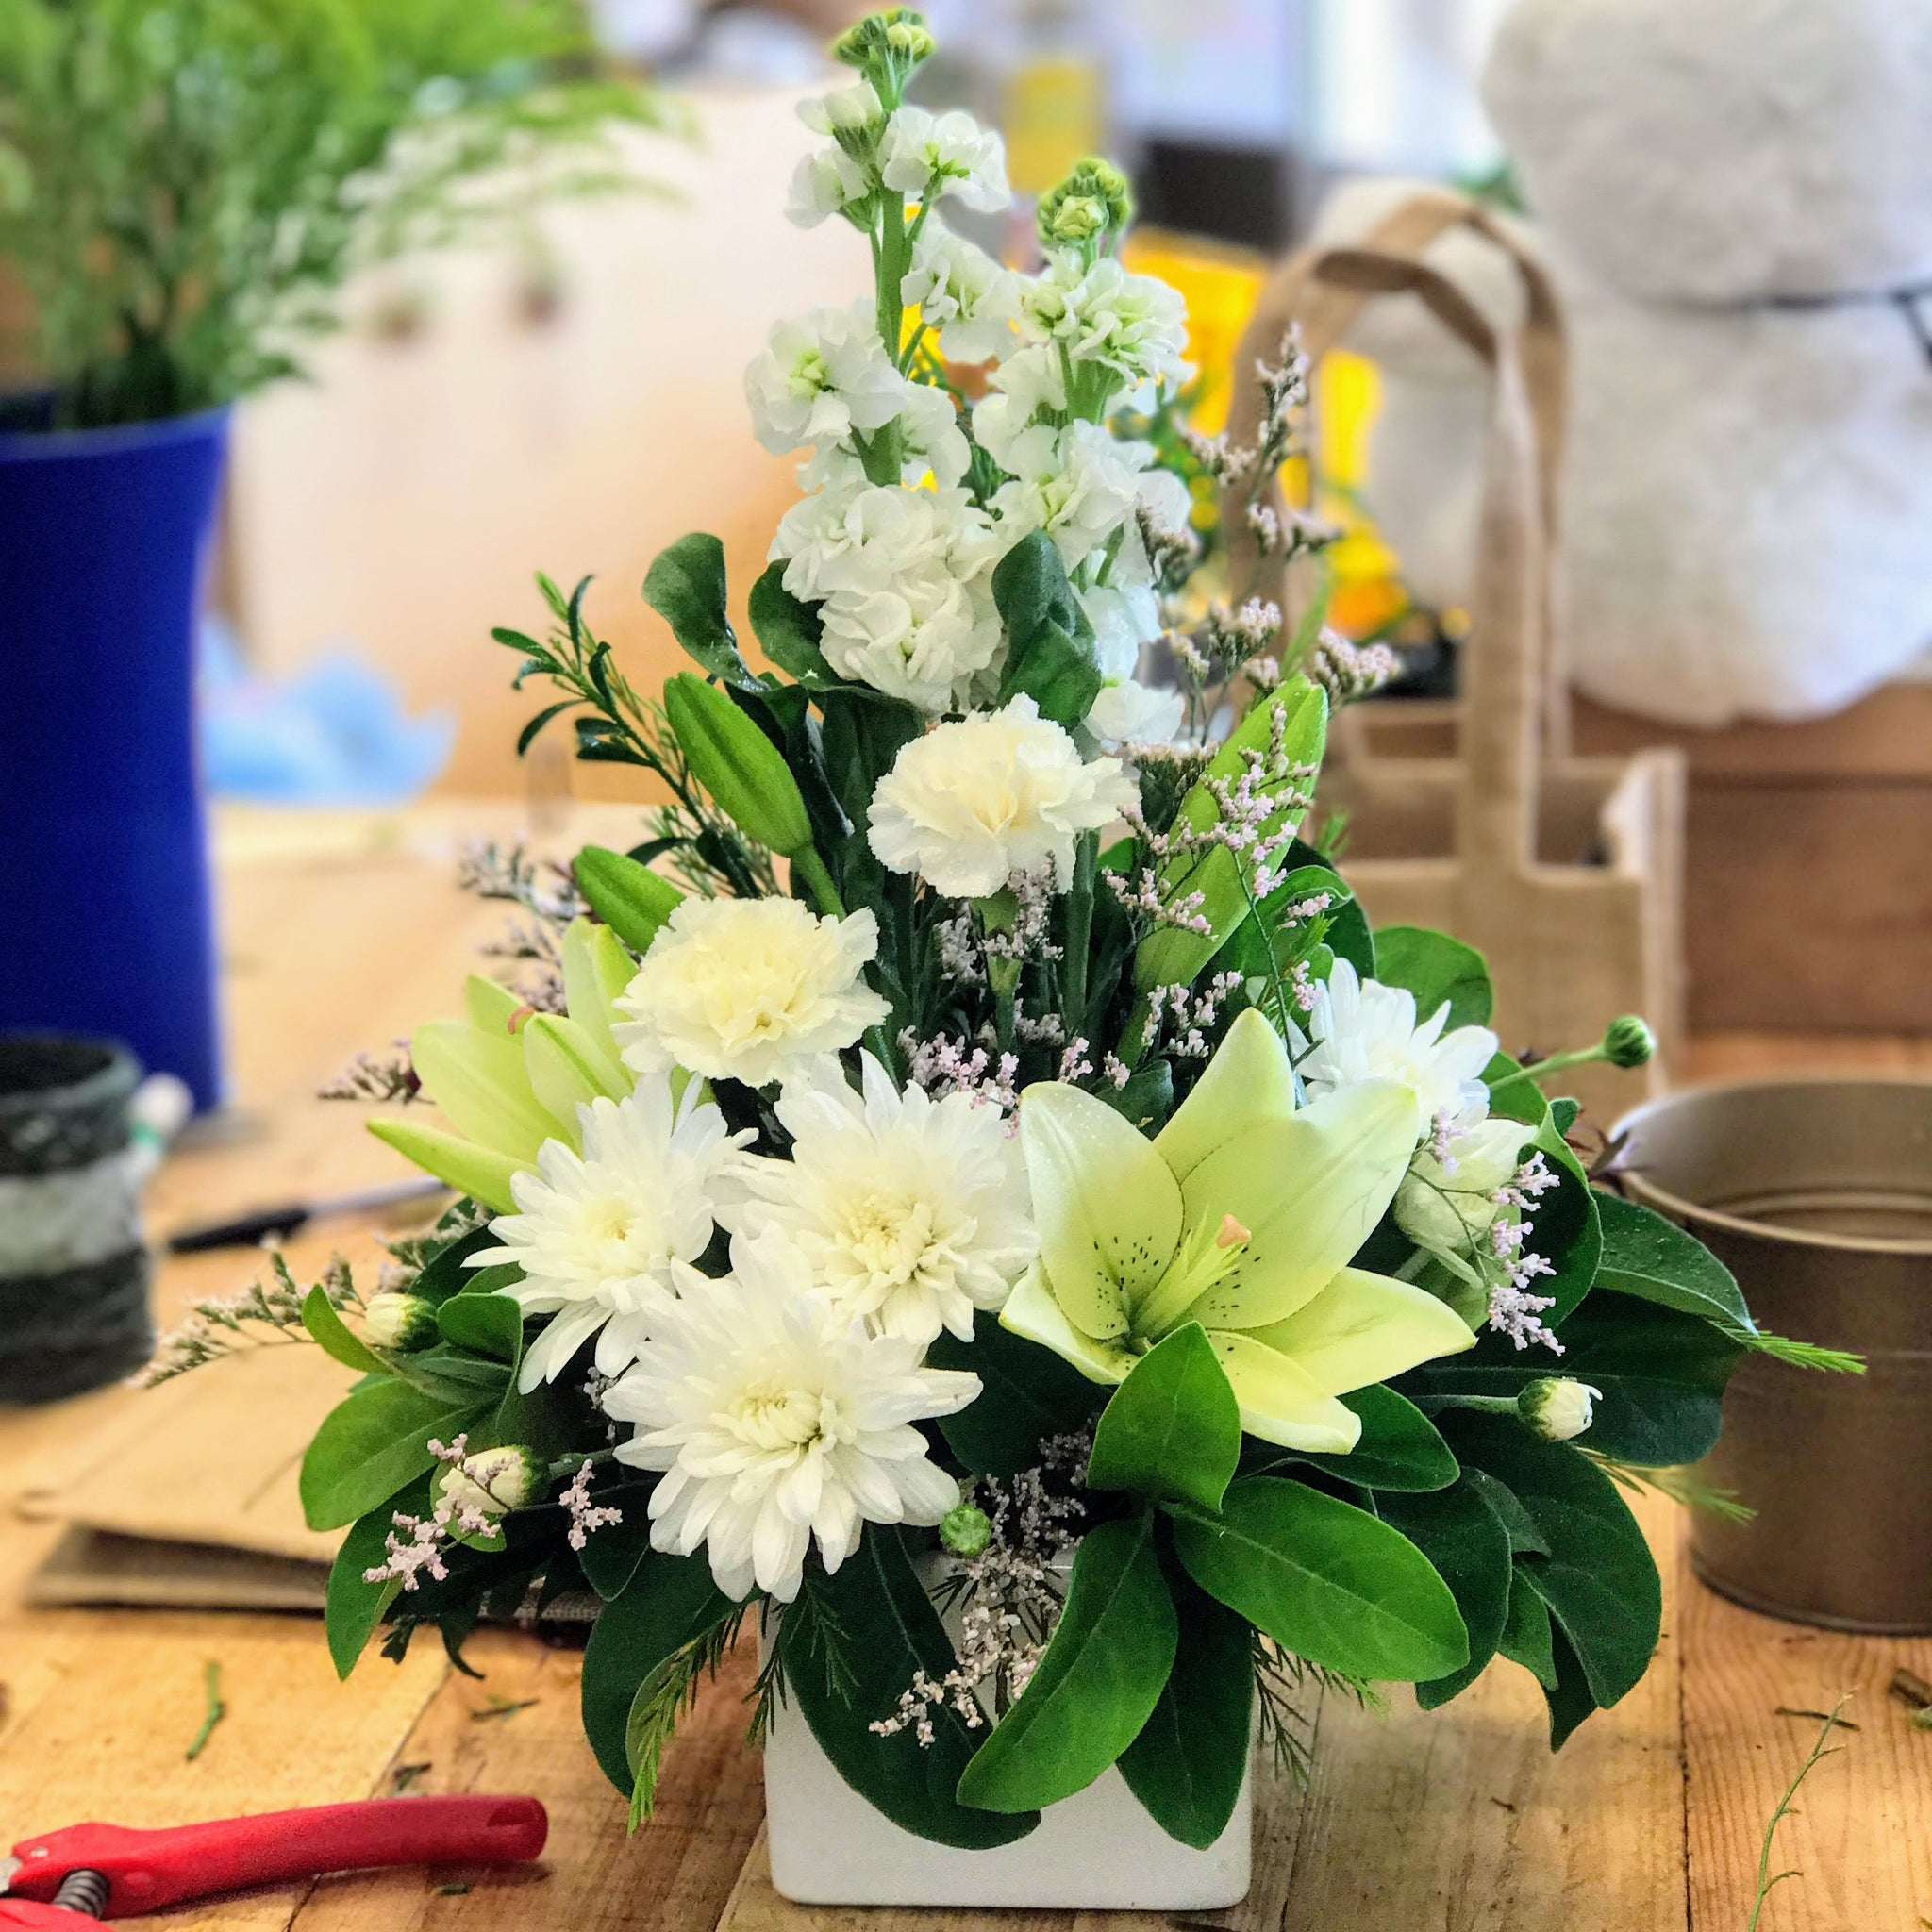 The La Bella flower arrangement combines a selection of soft whites and cream flowers to a traditional looking flower arrangement.   White stock, Lilium, chrysanthemum and carnation make up an upright elegant arrangement  in a classic white ceramic container.